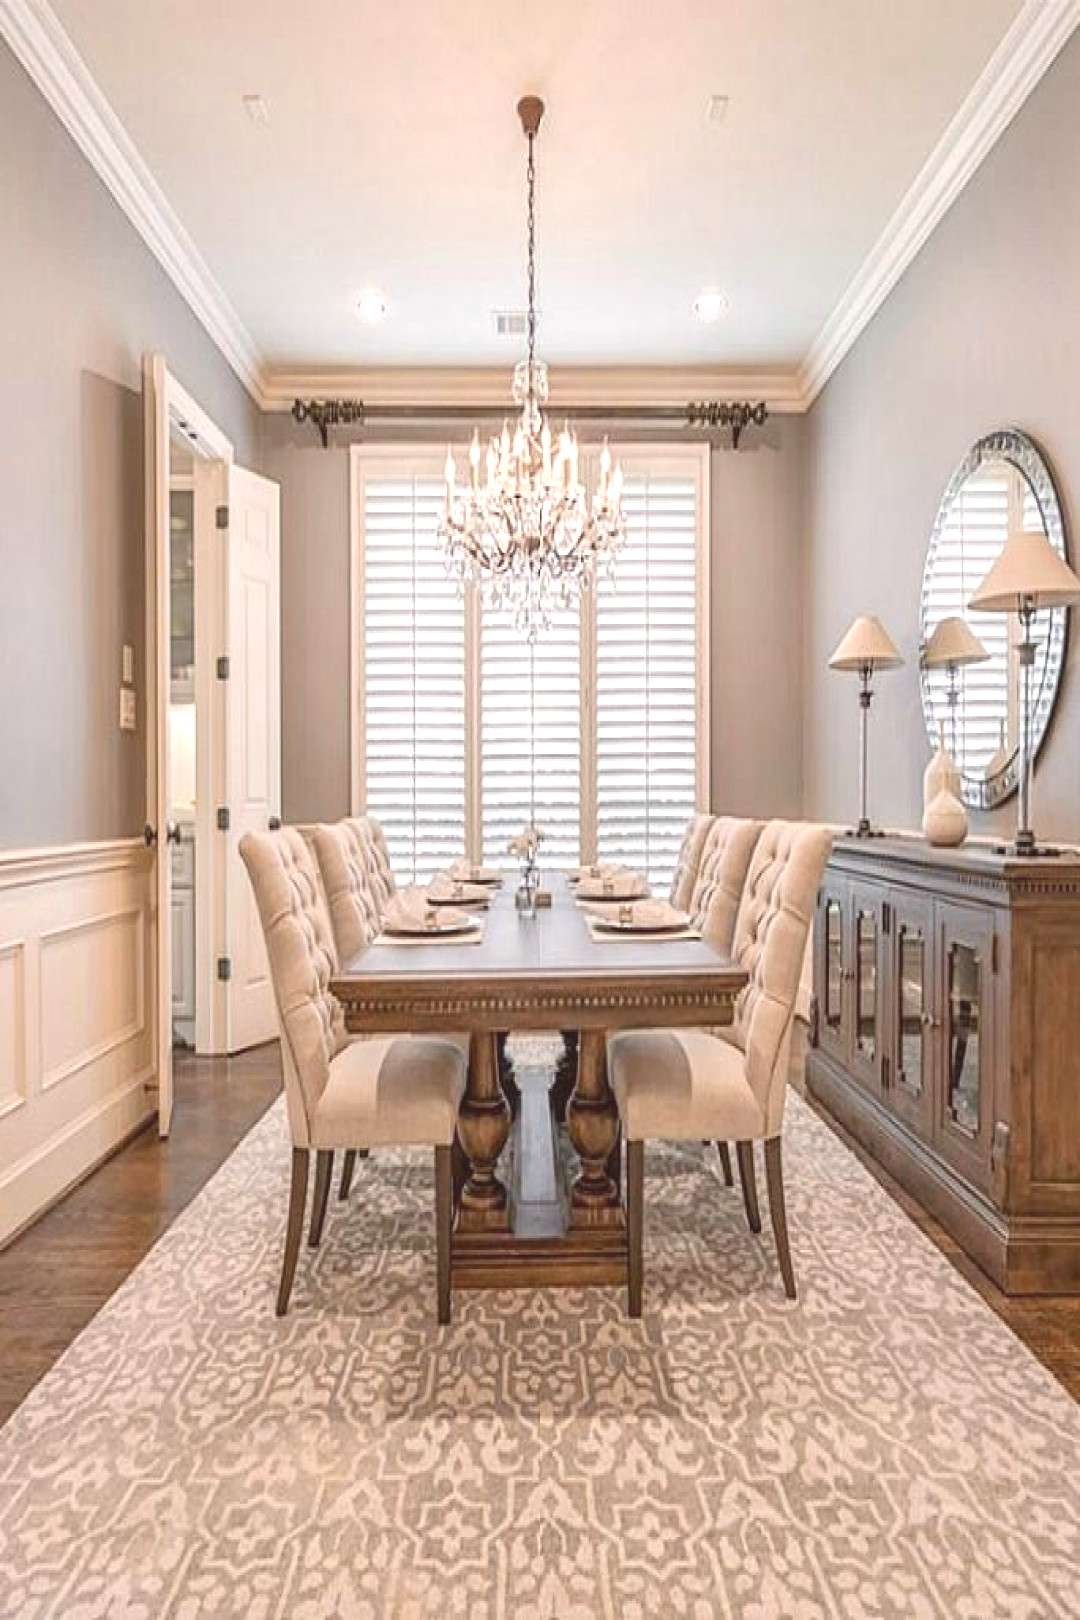 Dining room painted Sherwin Williams Dovetail with Sherwin Williams Antique White trim and ceiling